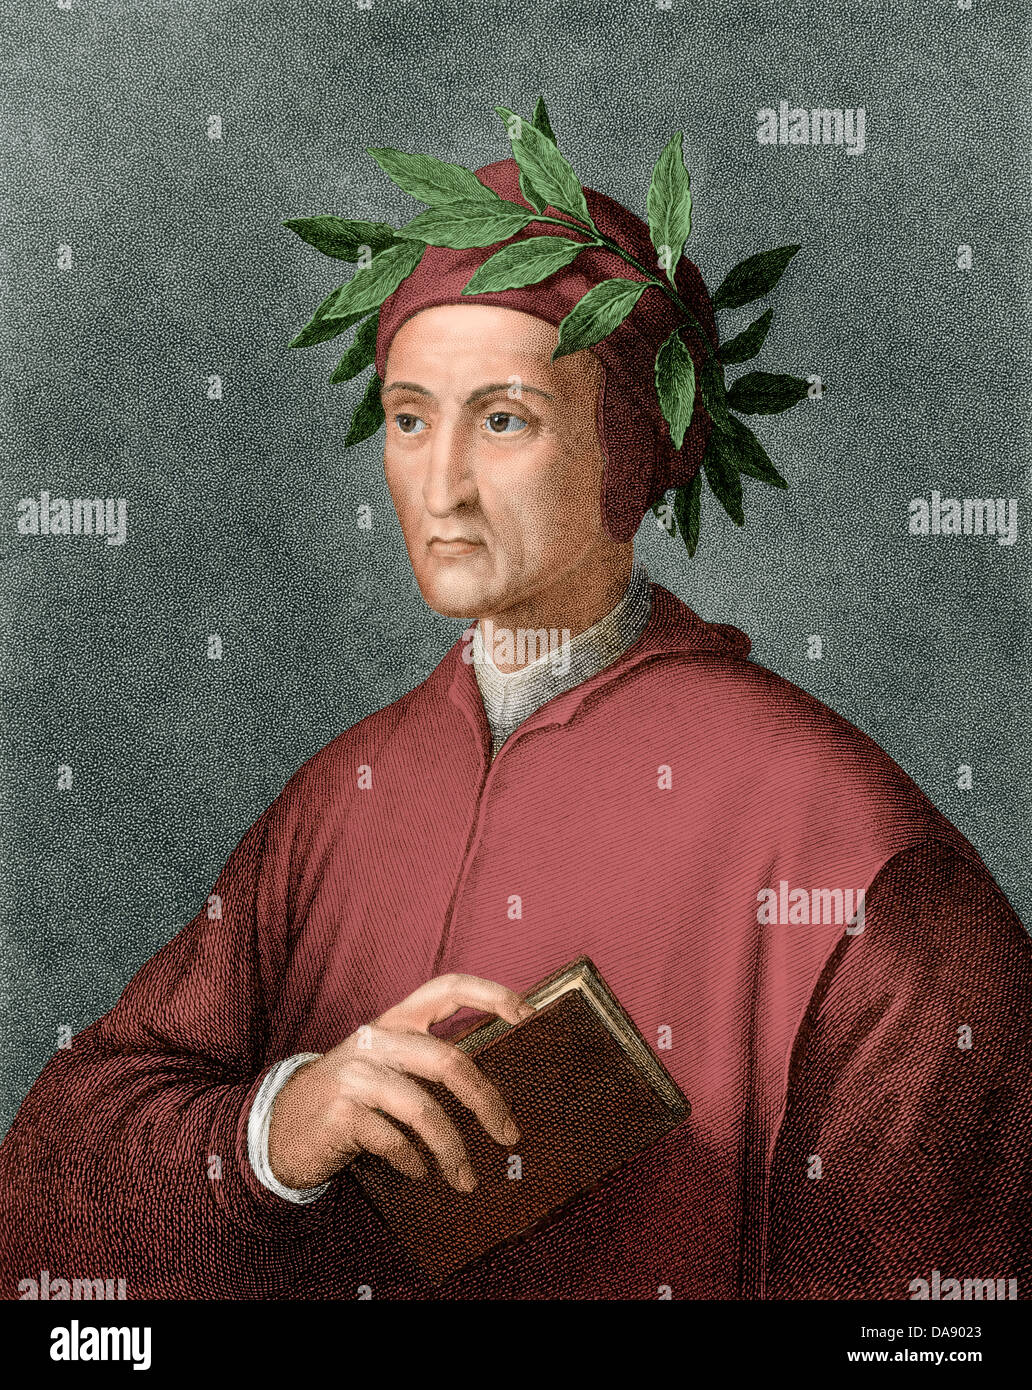 Dante Alighieri, Renaissance poet. Digitally colored engraving - Stock Image